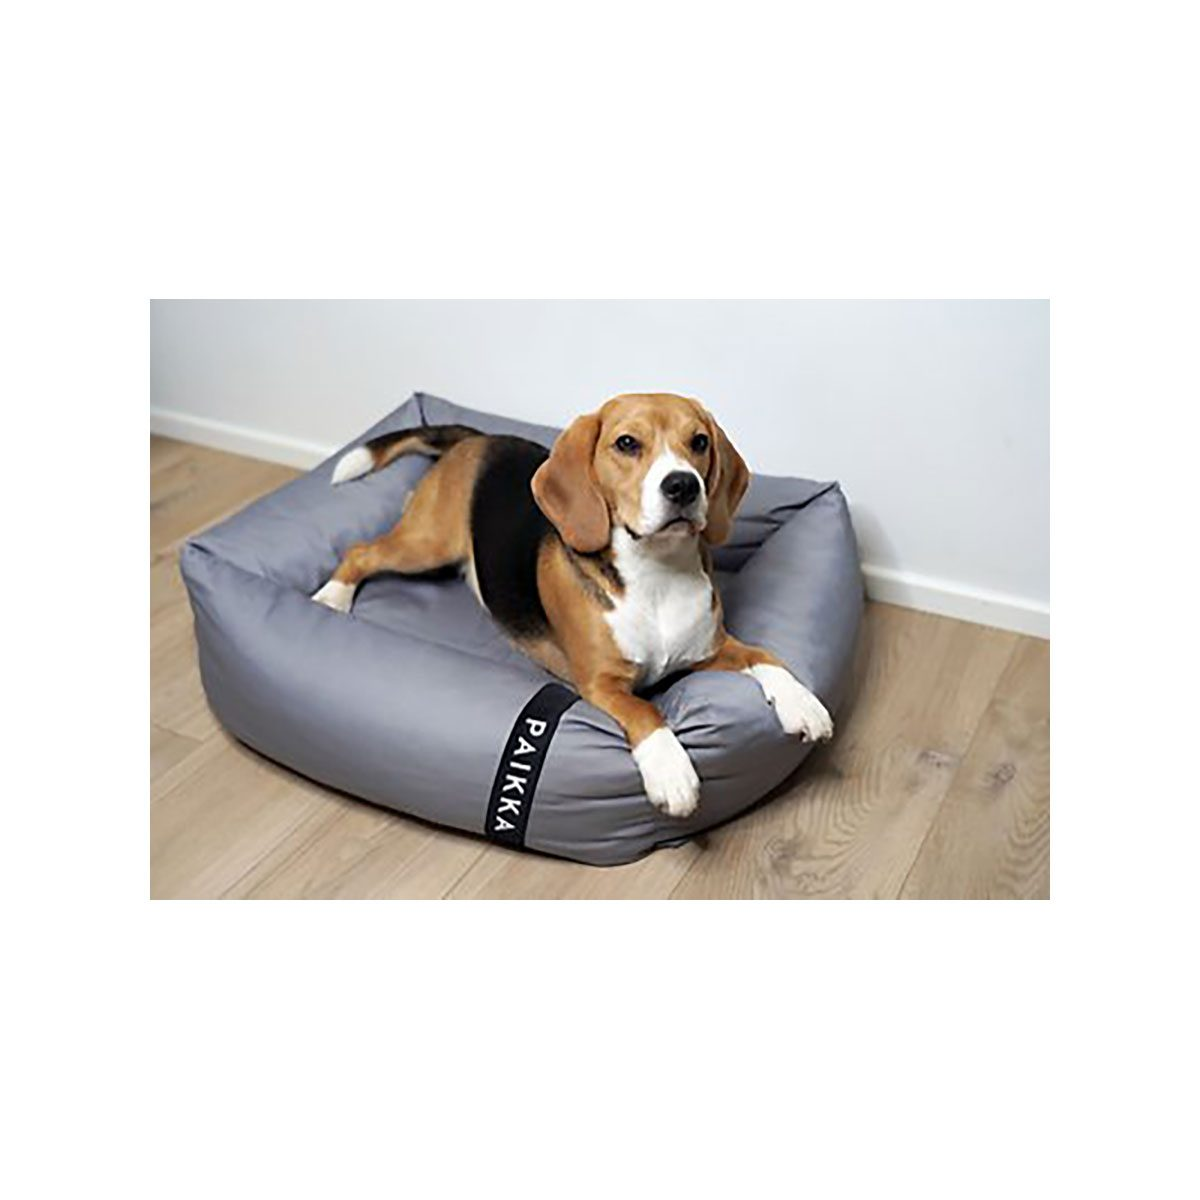 Dog Bed 234214 Main. Ac Sl400 V1588886653